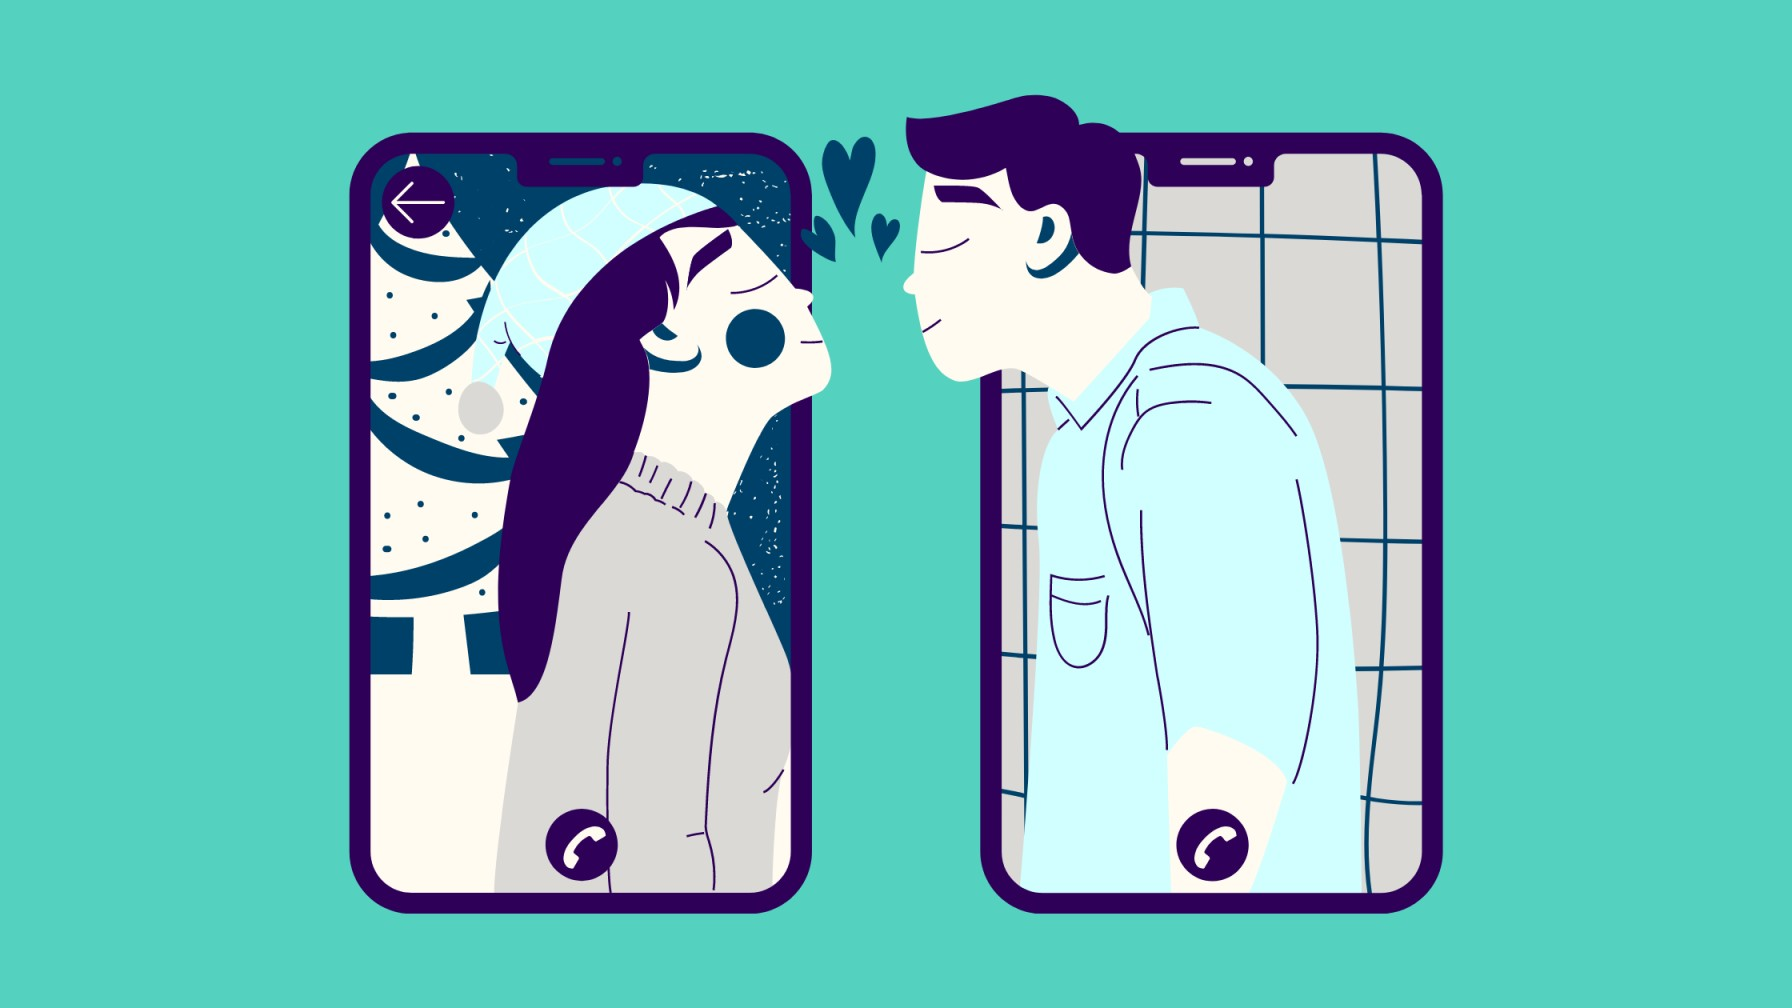 Product that sells itself: Tinder as an example